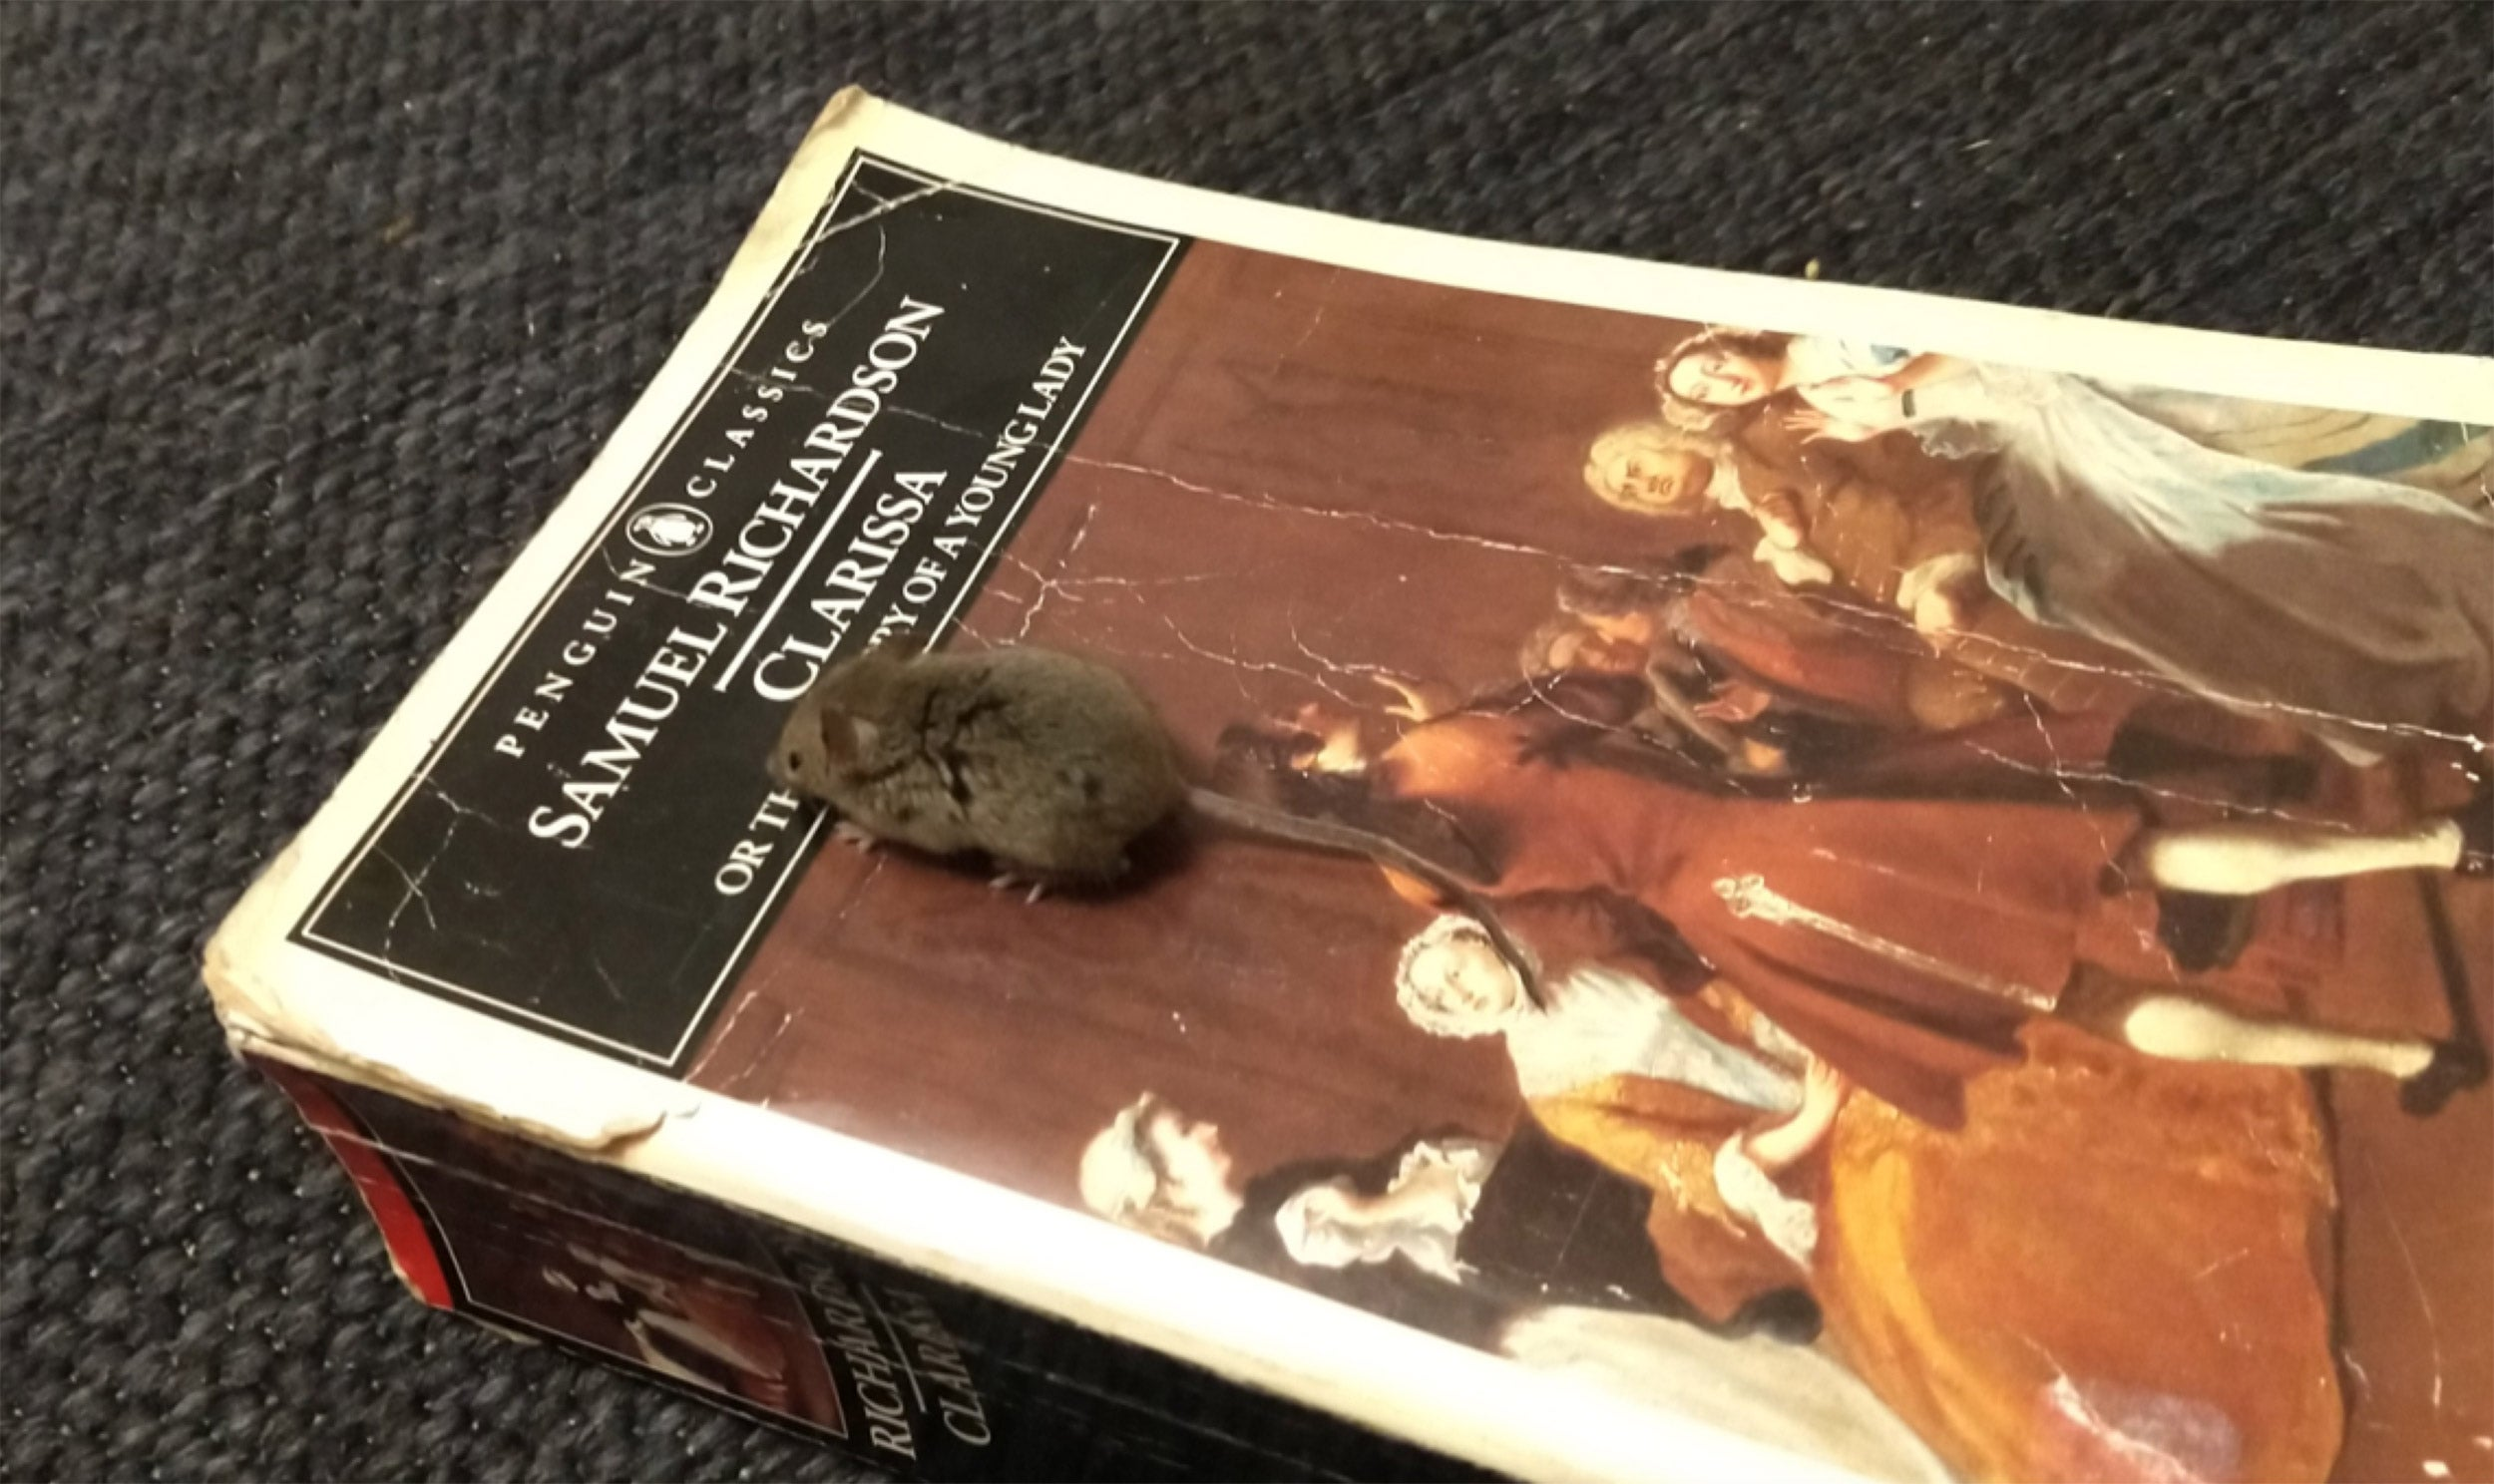 A mouse on a book.